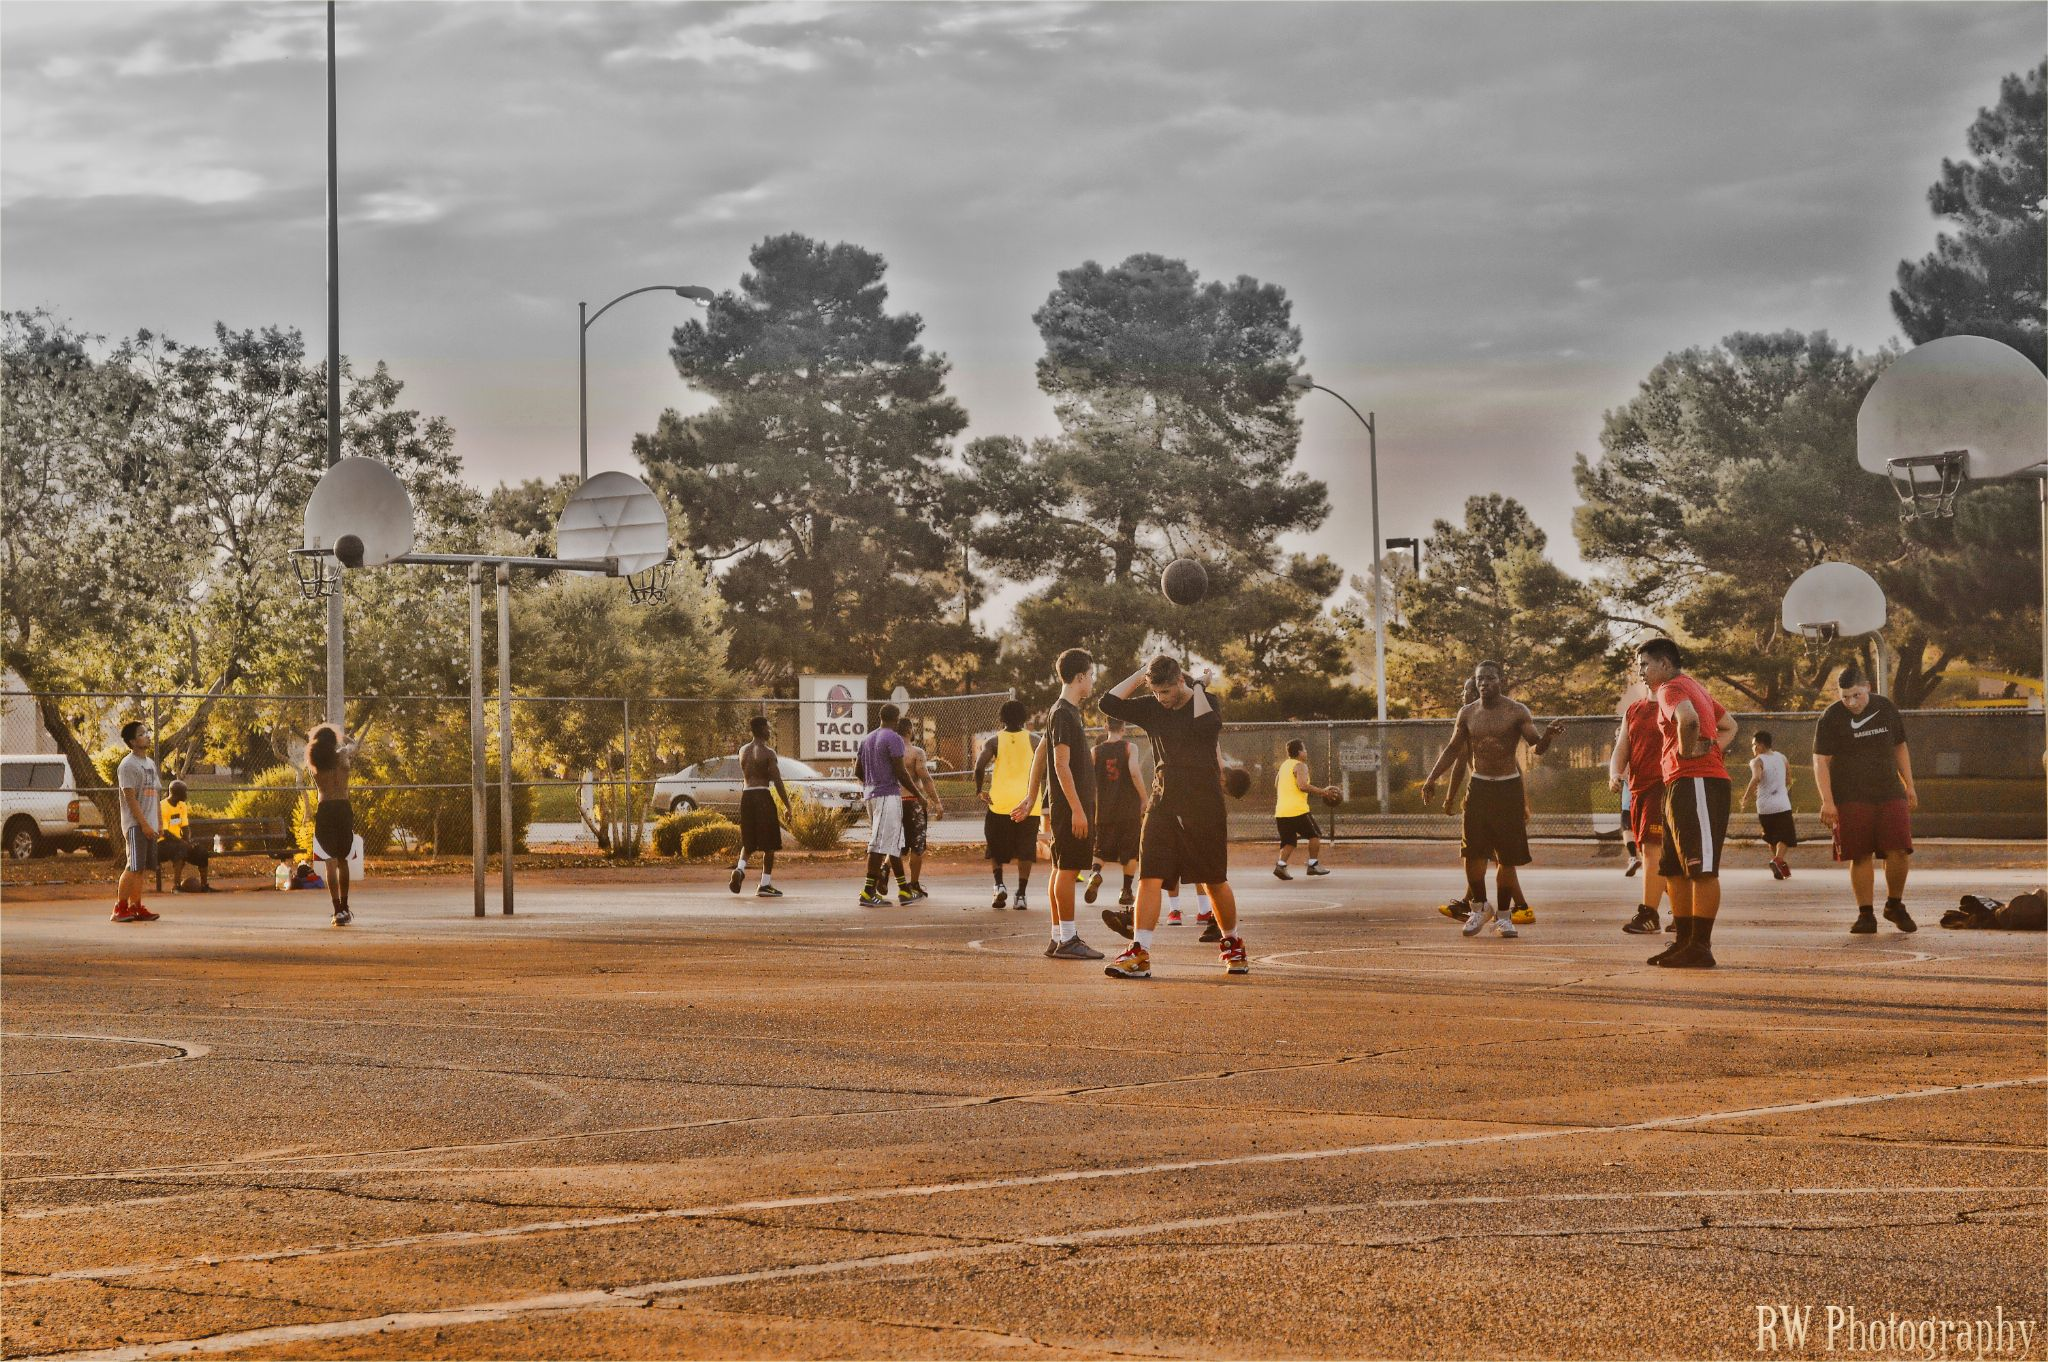 B Ball Game At Sunset Park Capture by Rod Wash